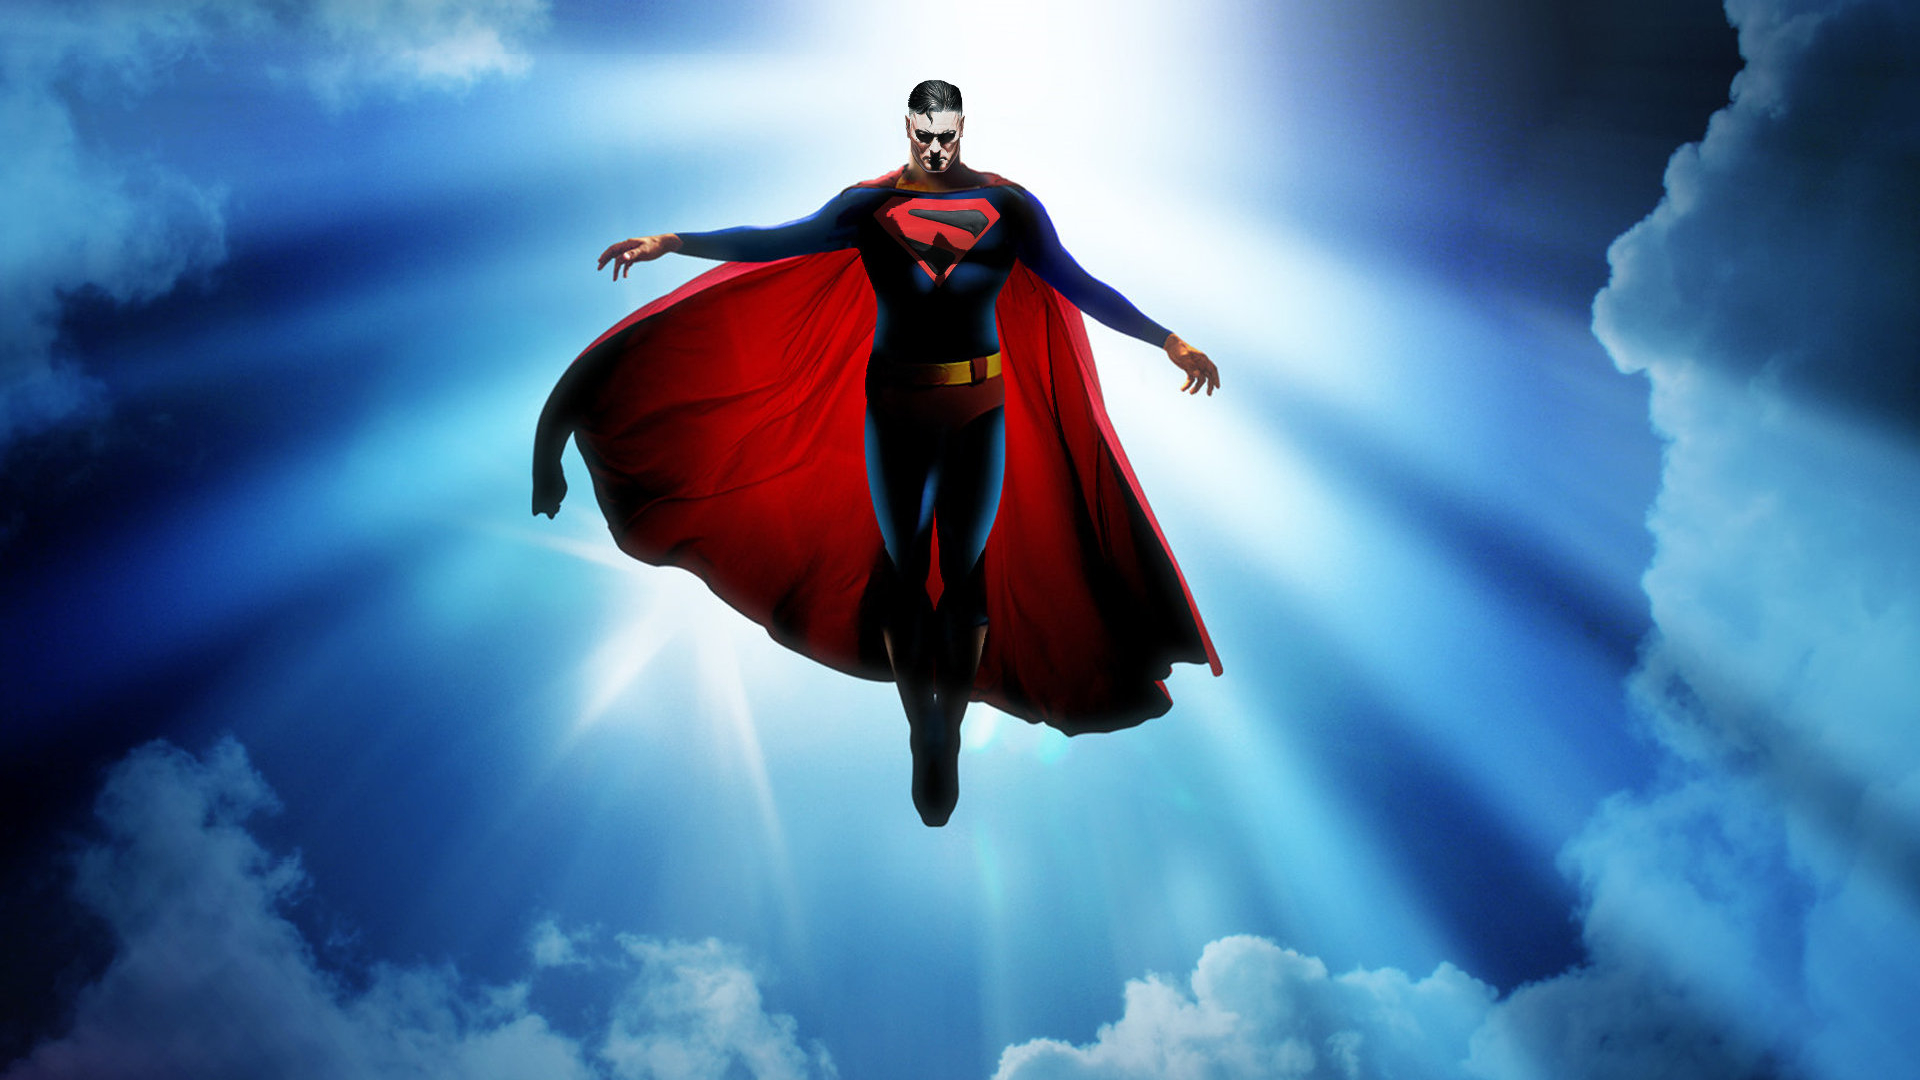 Superman HD Wallpaper | Background Image | 1920x1080 | ID:208531 - Wallpaper Abyss